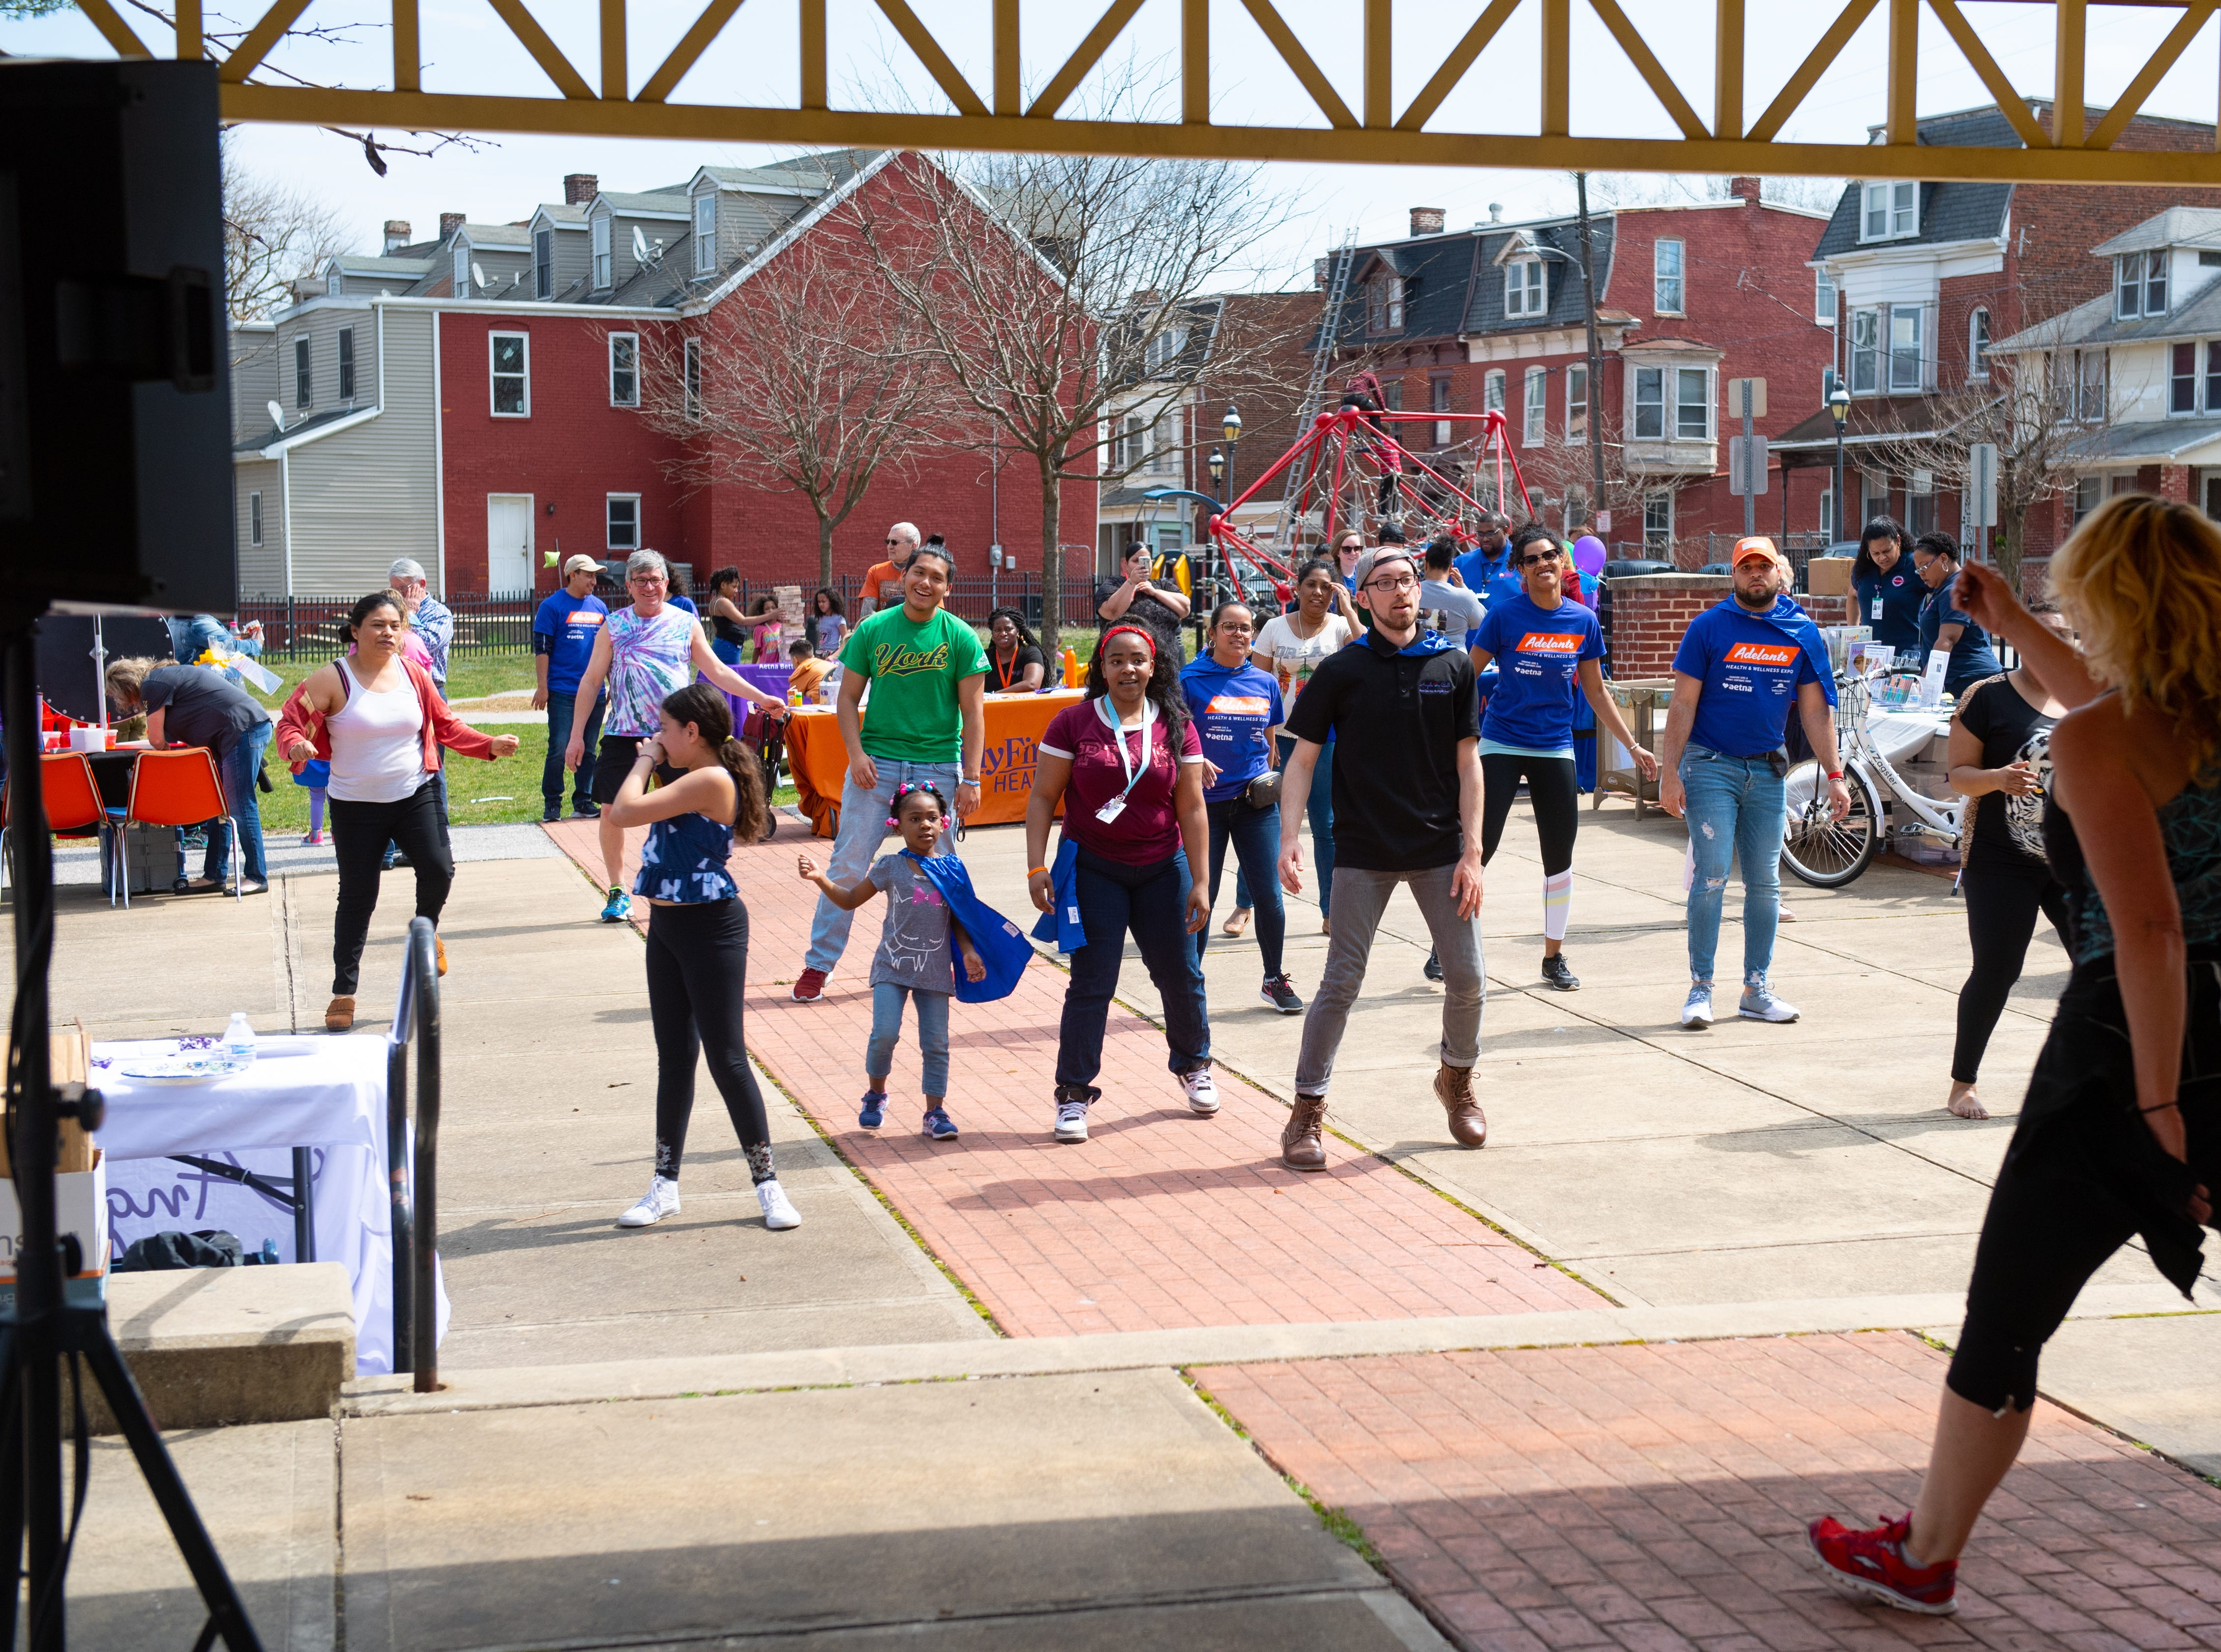 A Zumba class gets attendees up and active during the Adelante Festival at Renaissance Park, March 30, 2019.